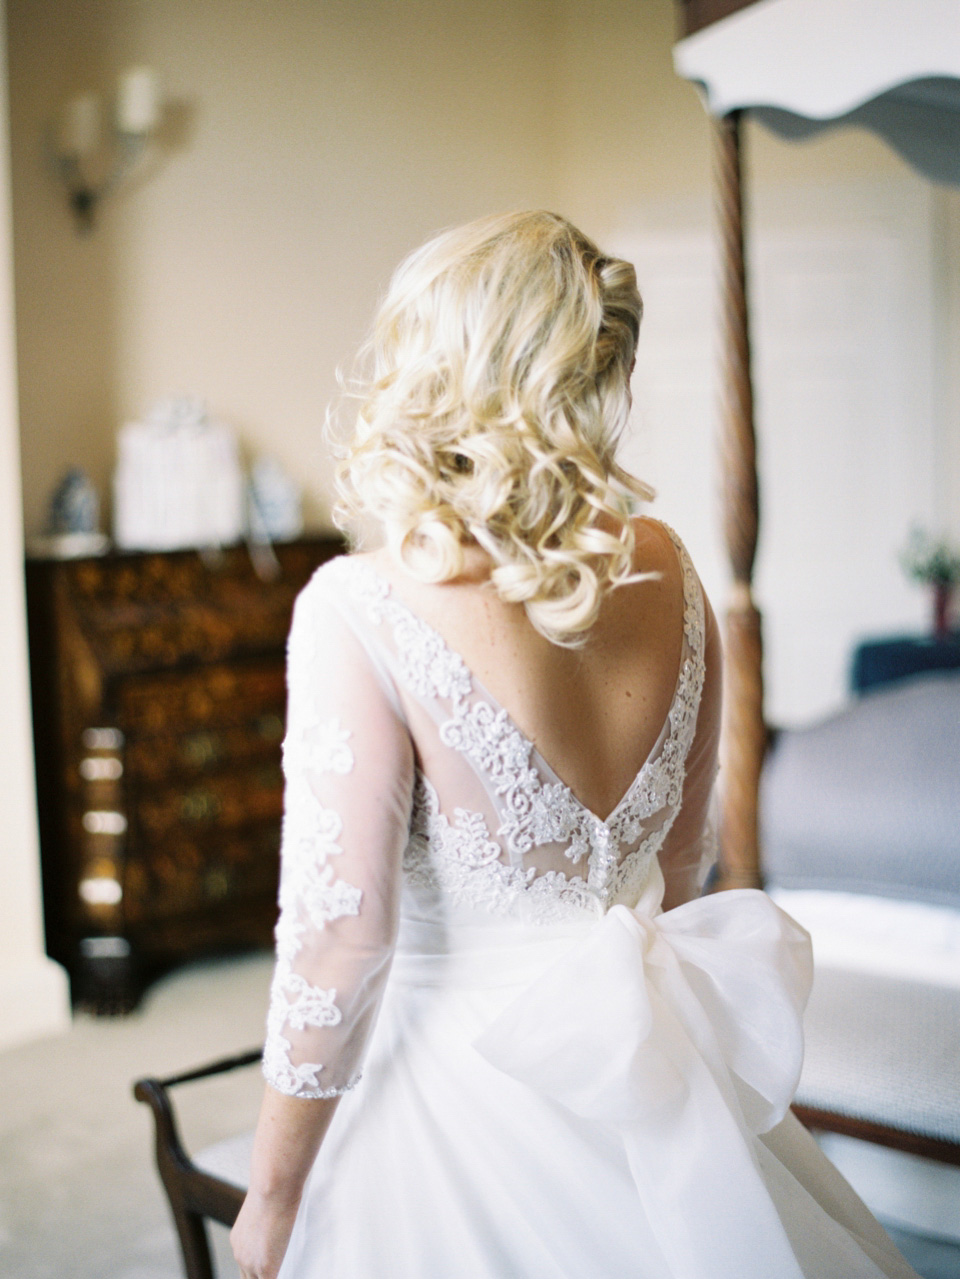 Old School Hollywood Glamour:  The Breathtaking Wedding of Charlotte and Teddy (Films Weddings )